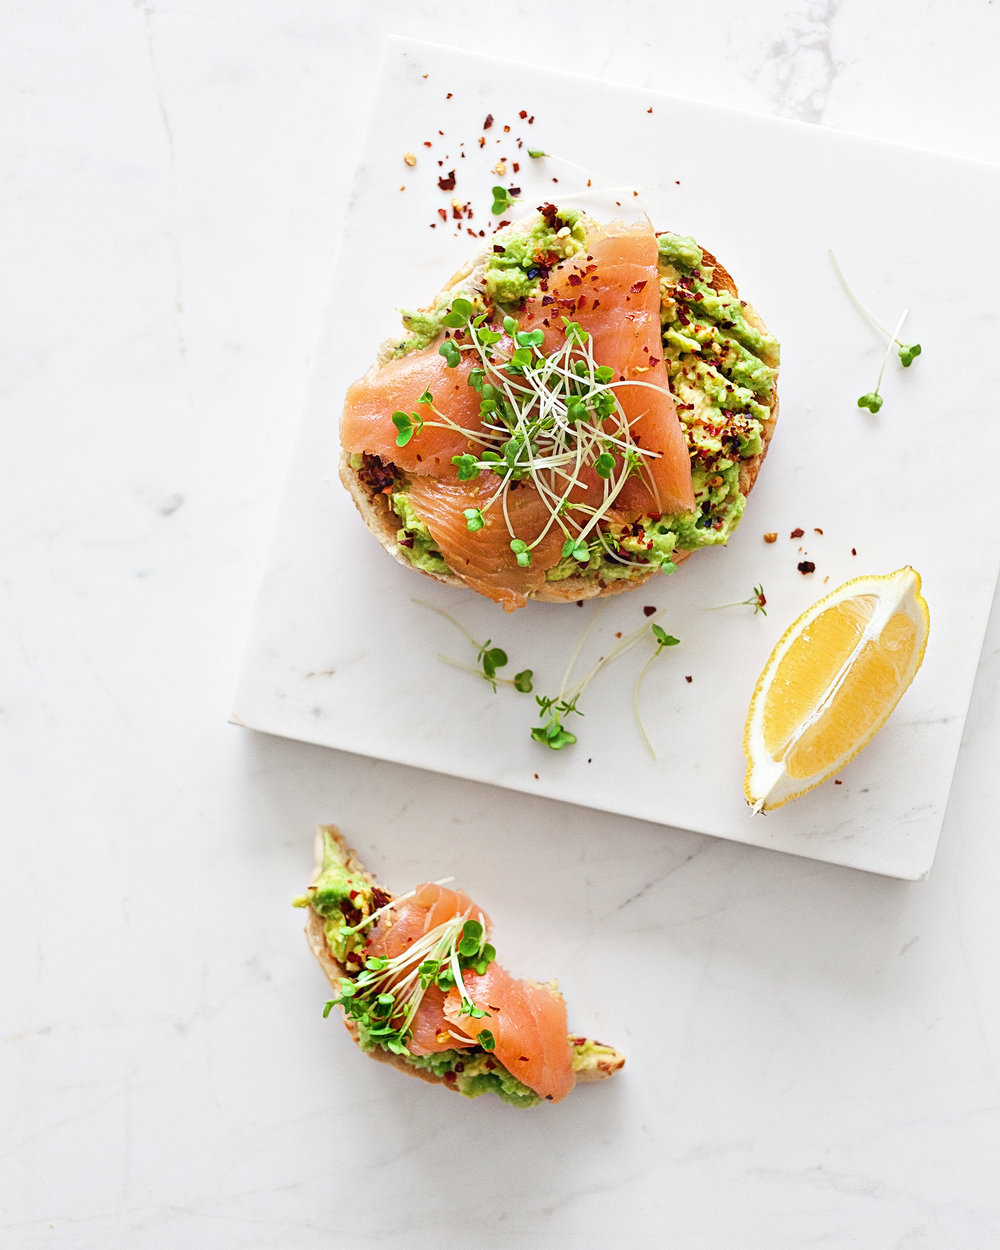 Avocado with Chilli & Smoked Salmon on Toasted Bagels | Marble Table and Marble Serverware from Serax Belgium